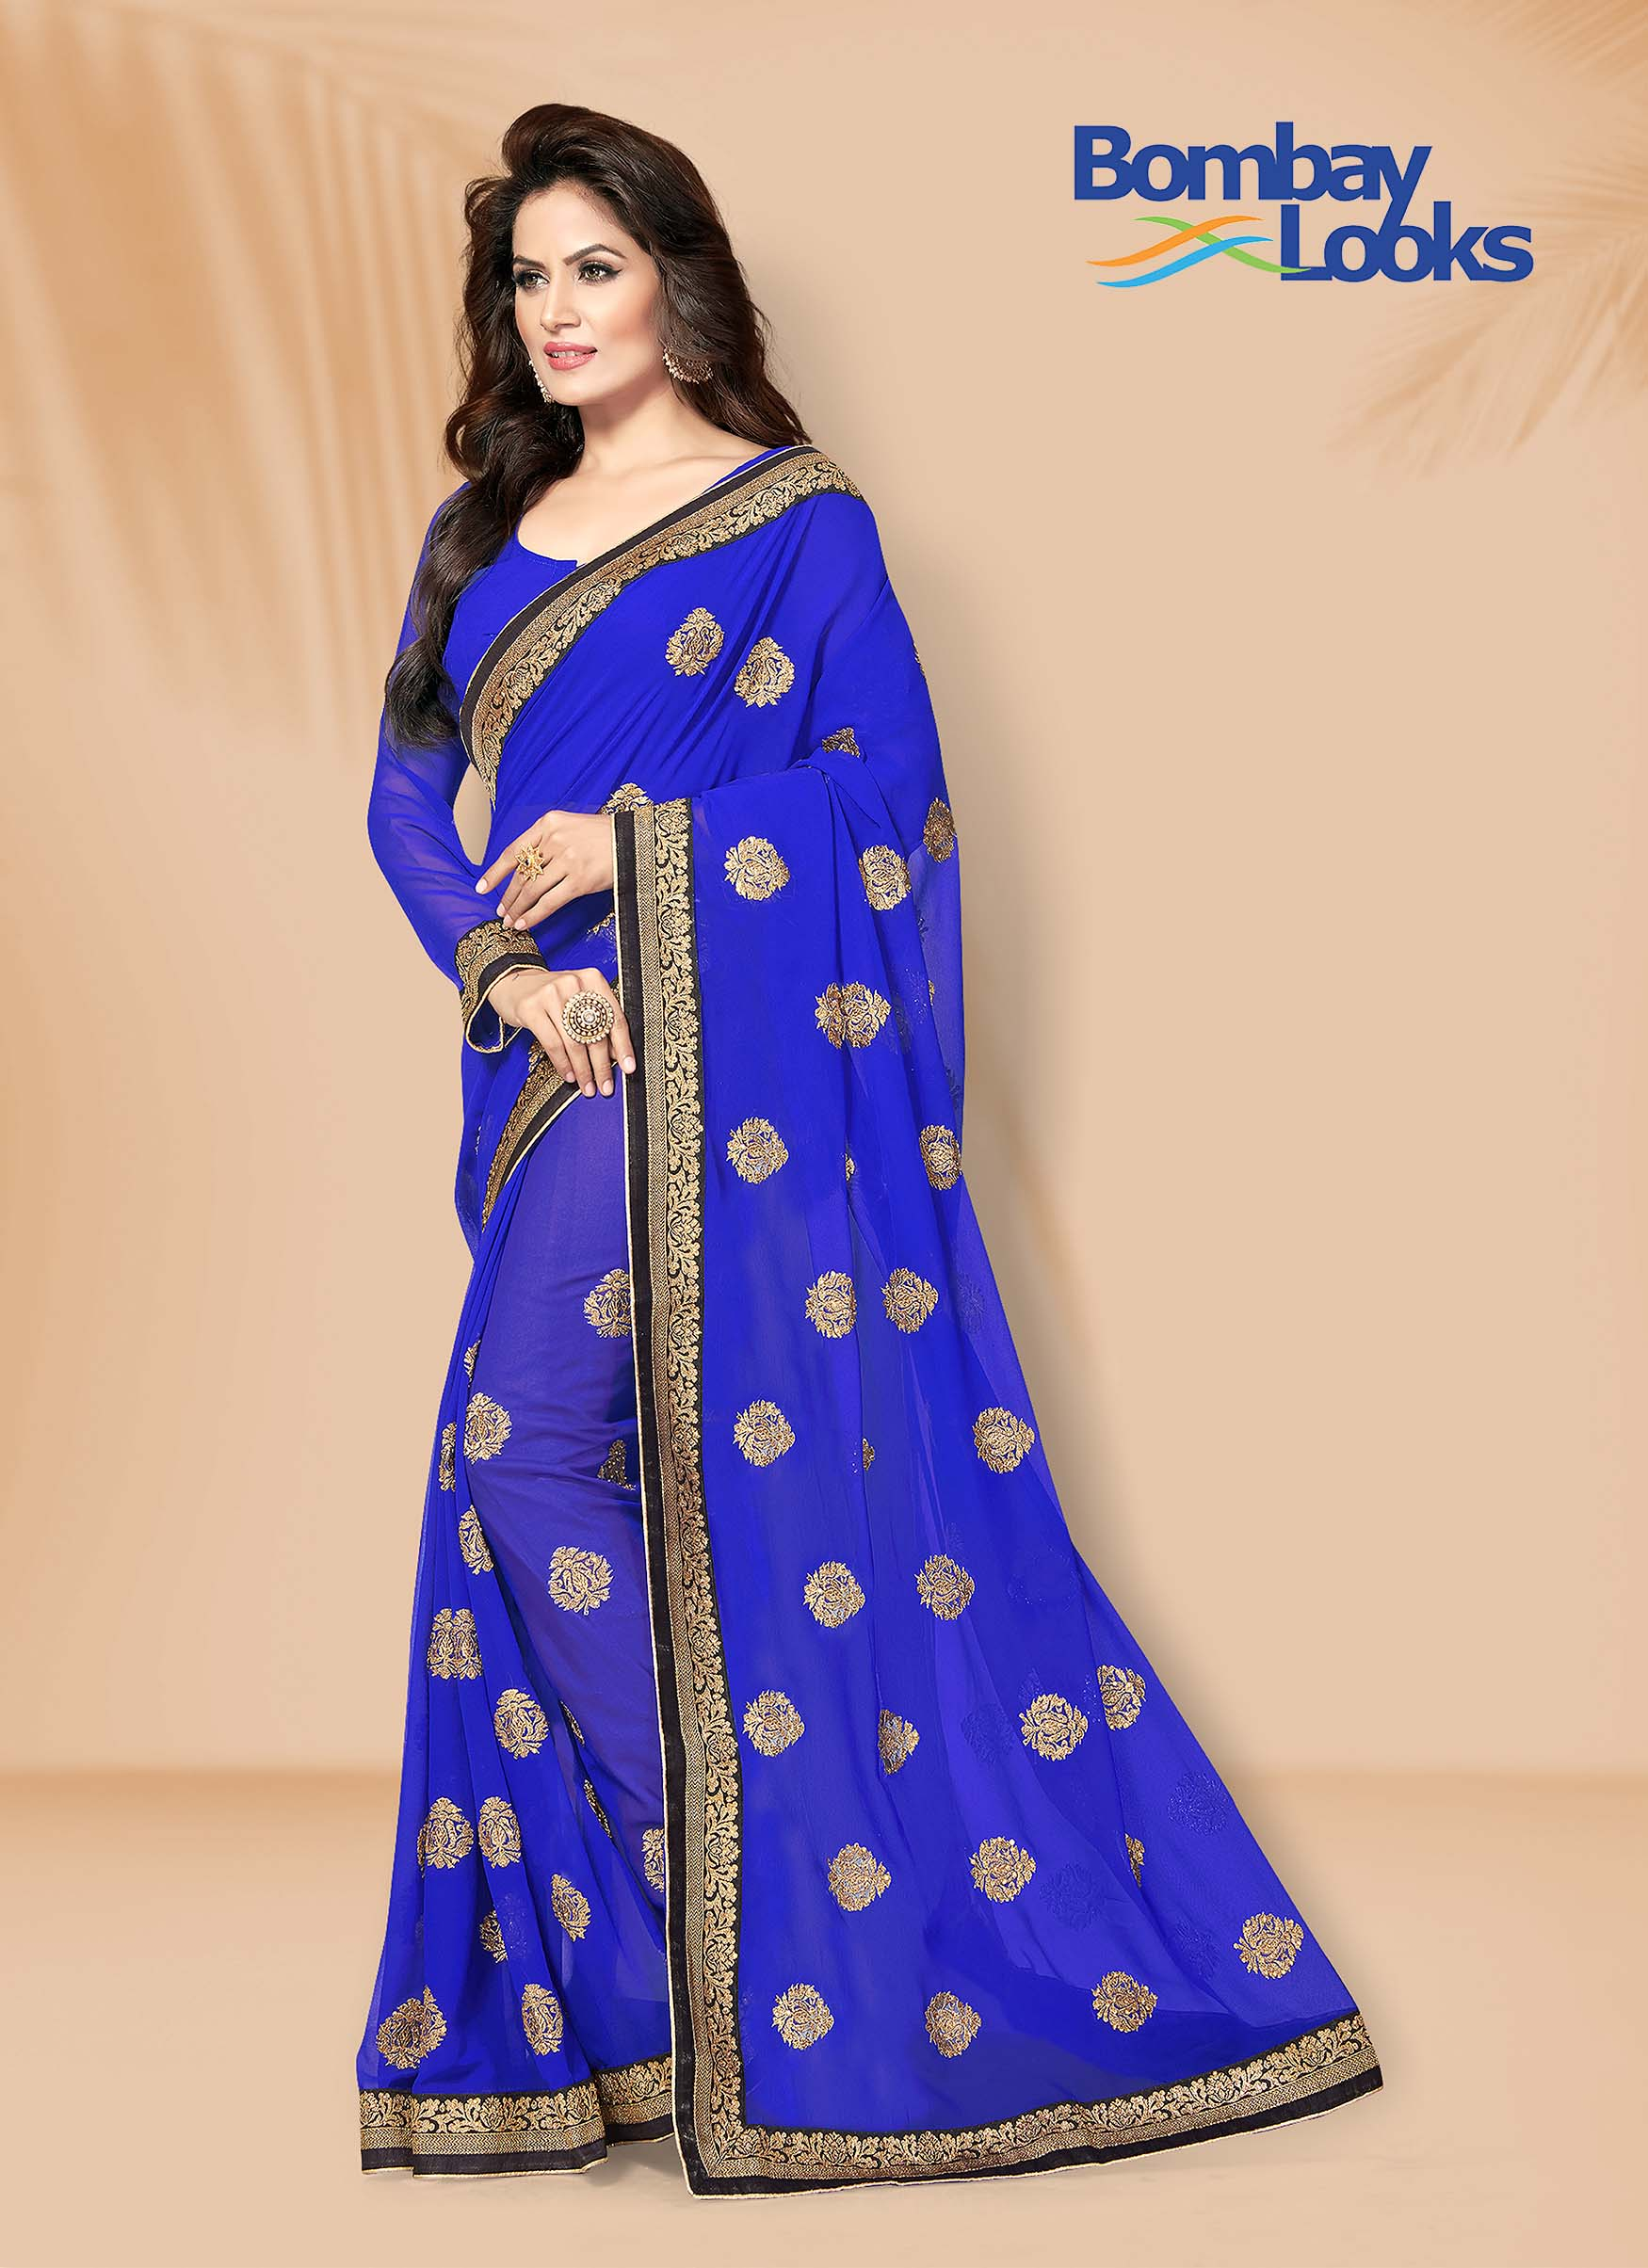 Royal Blue georgette Saree with Golden Zari Border and Motifs